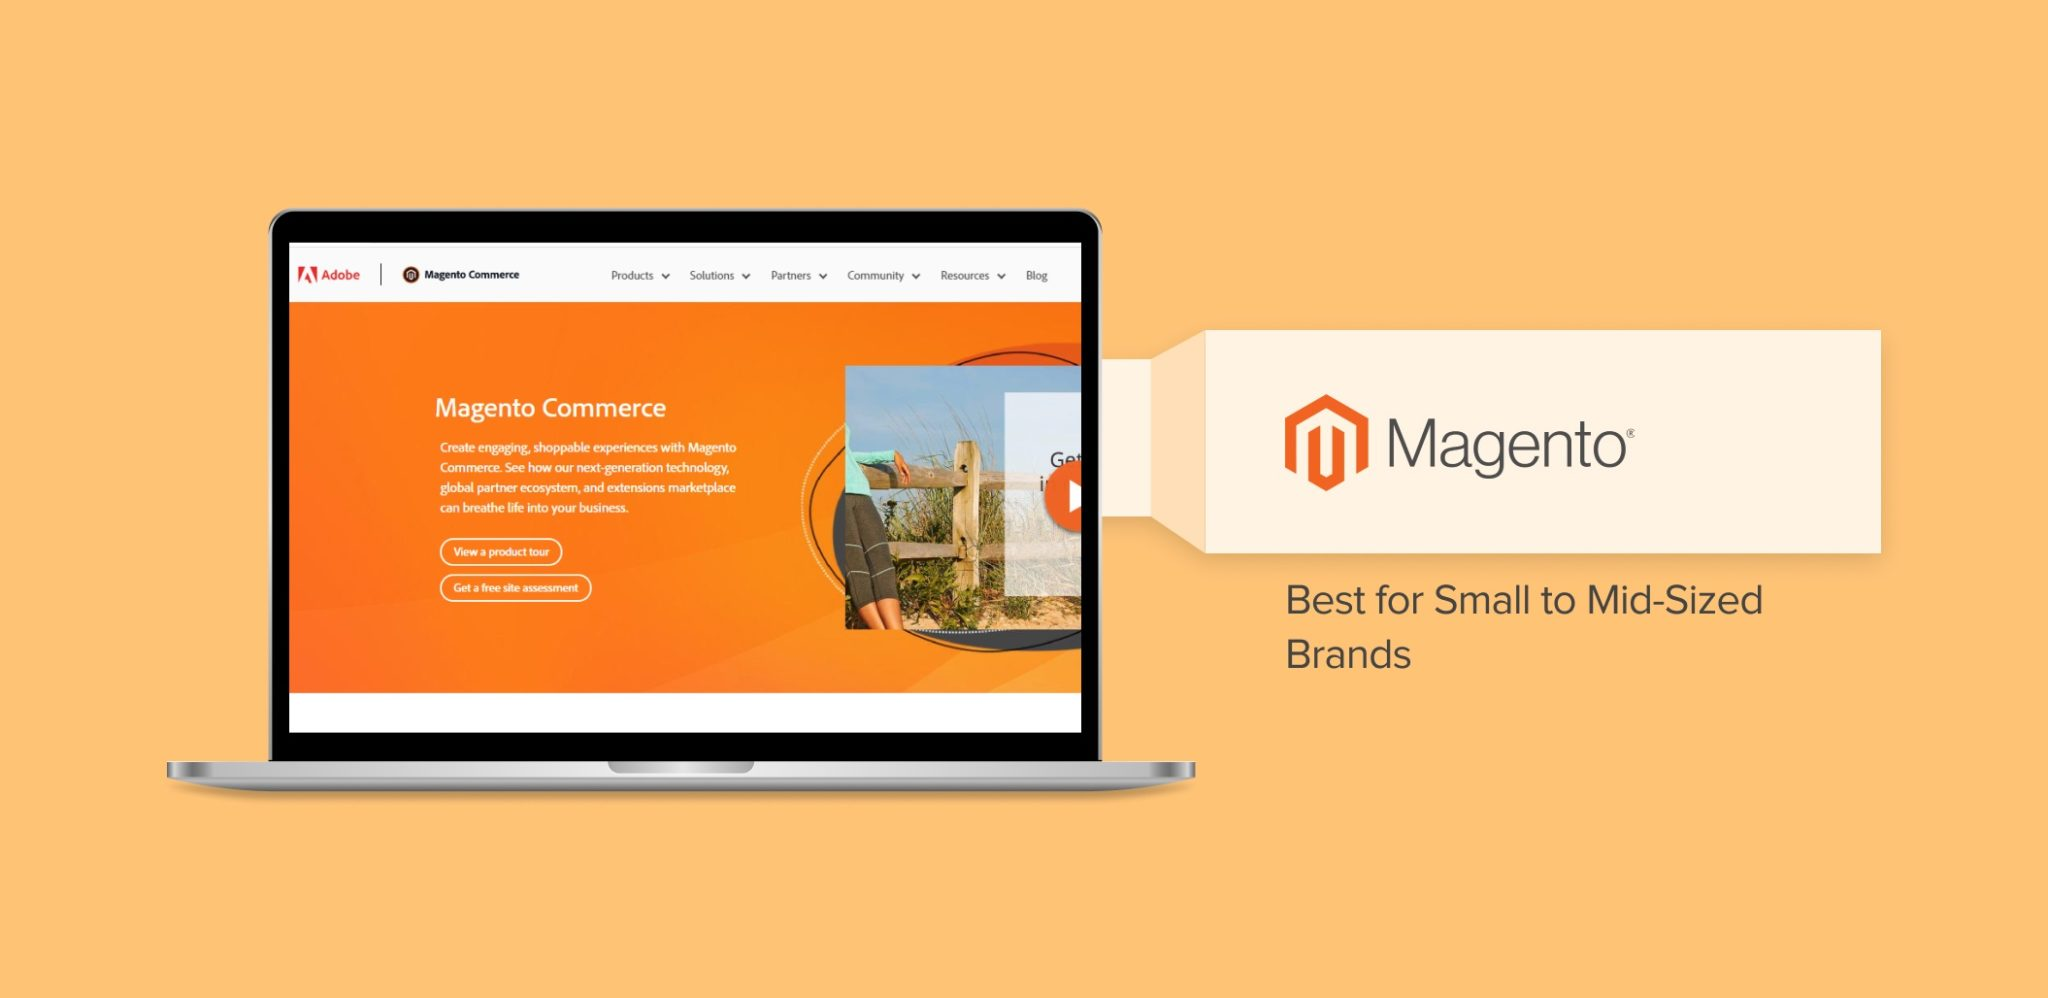 Magento - Best for Small to Mid-Sized Brands